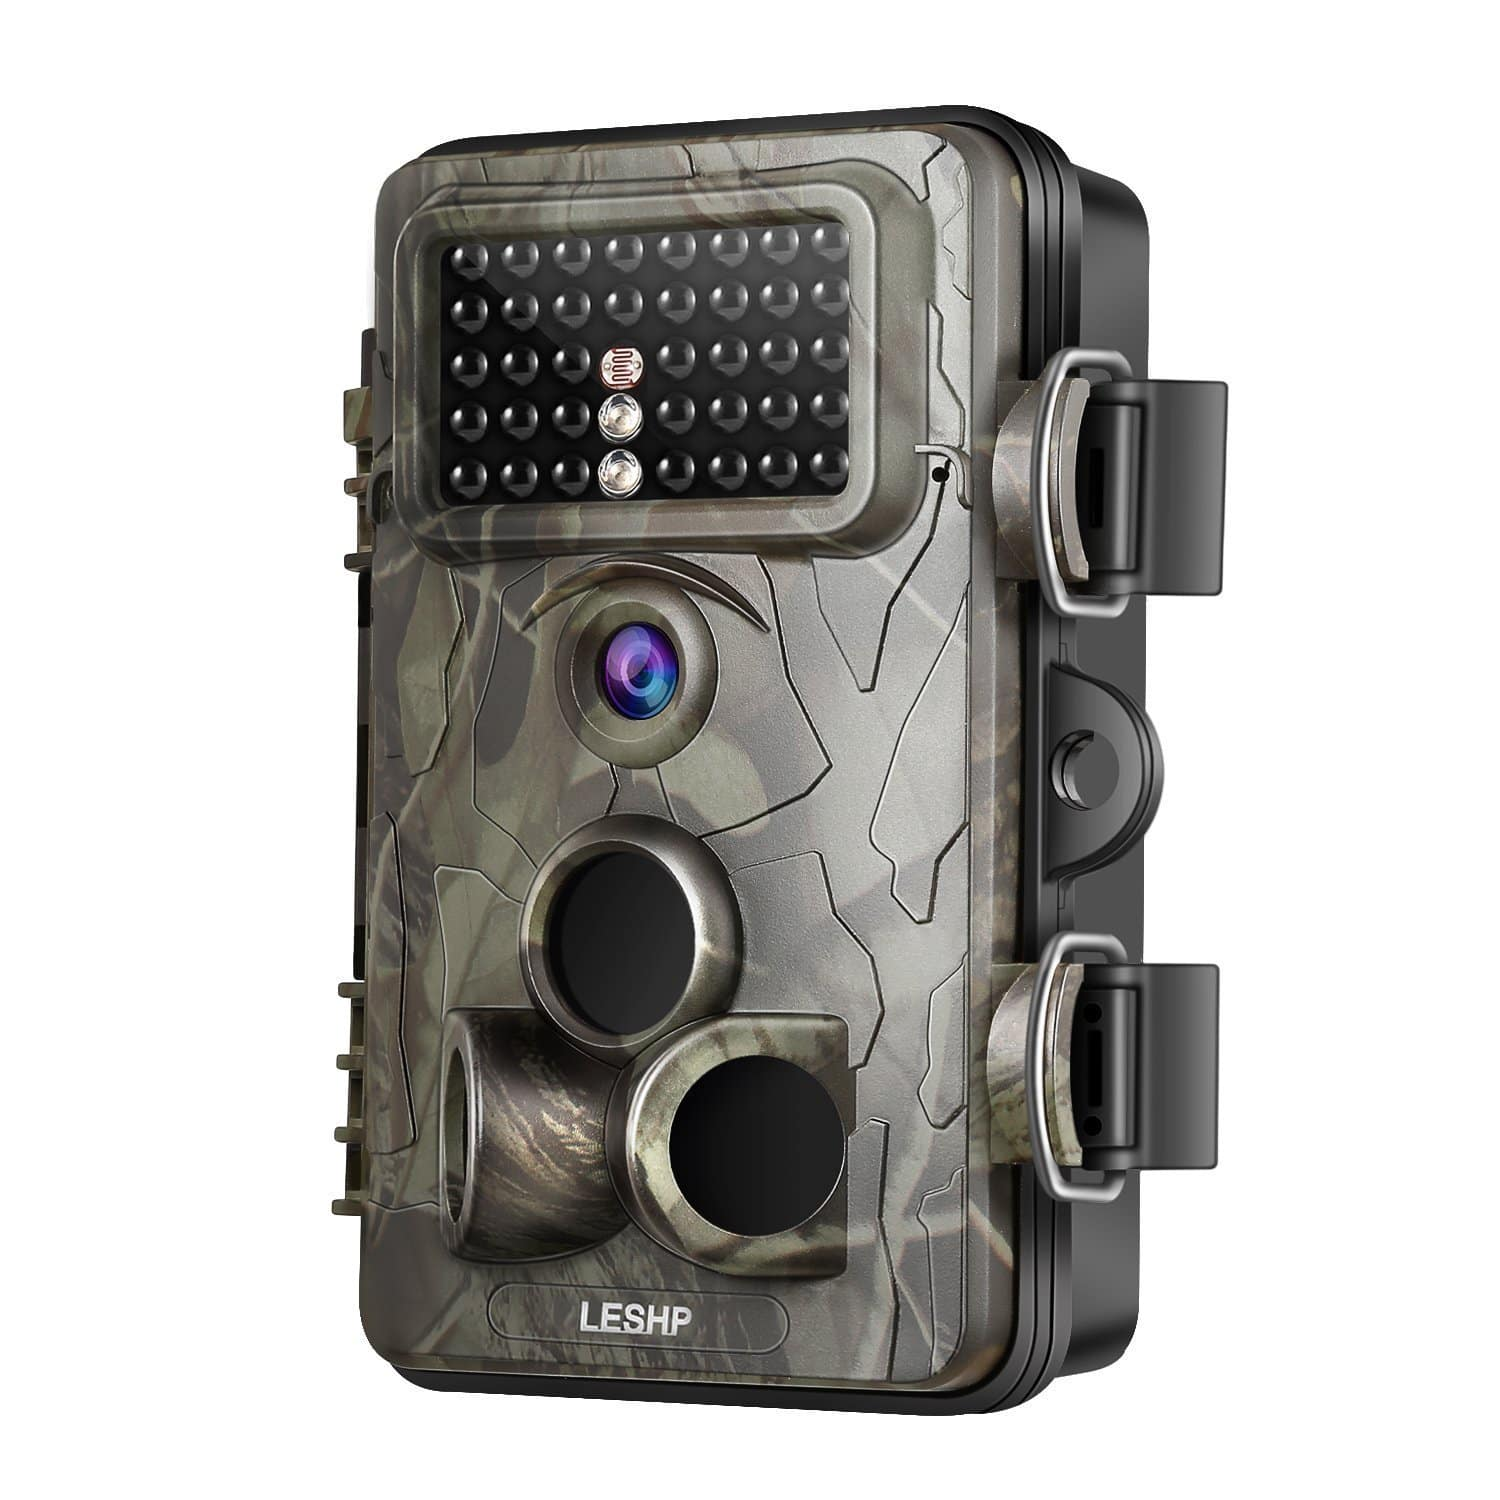 LESHP 12MP 1080P HD Game and Trail Night Vision Camera for $79.99 @Amazon